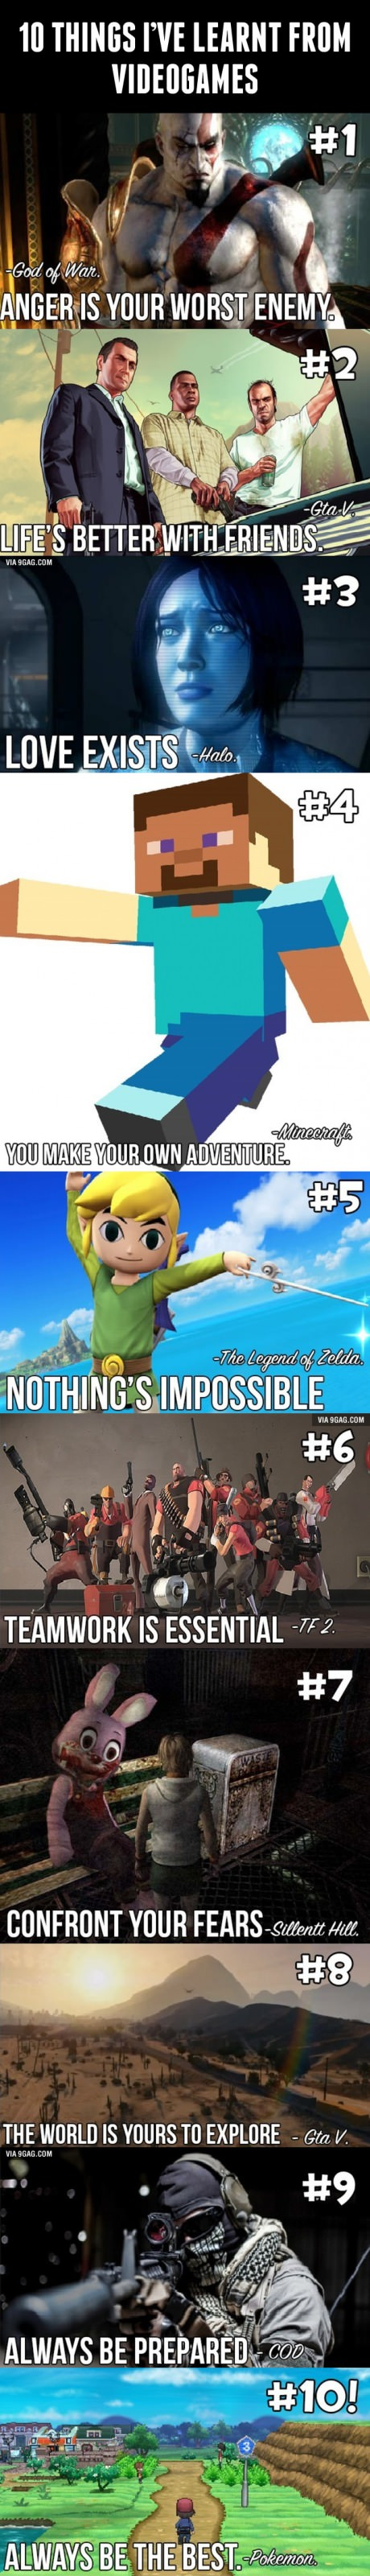 10 Thing I've Learnt From Video Games